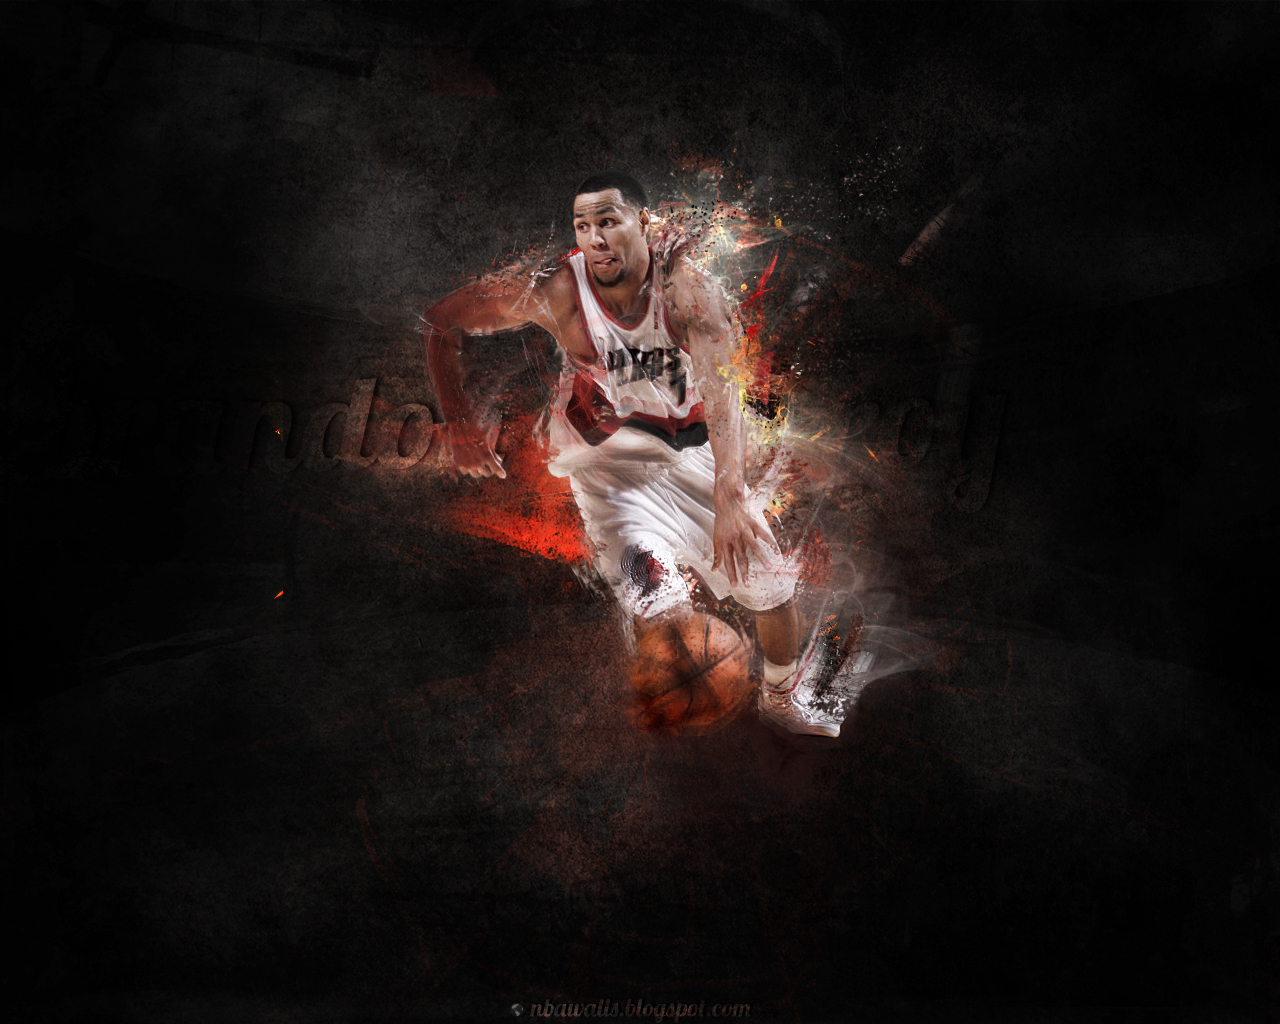 NBA wallpaper NBA basketball wallpaper NBA desktop wallpaper 1280x1024